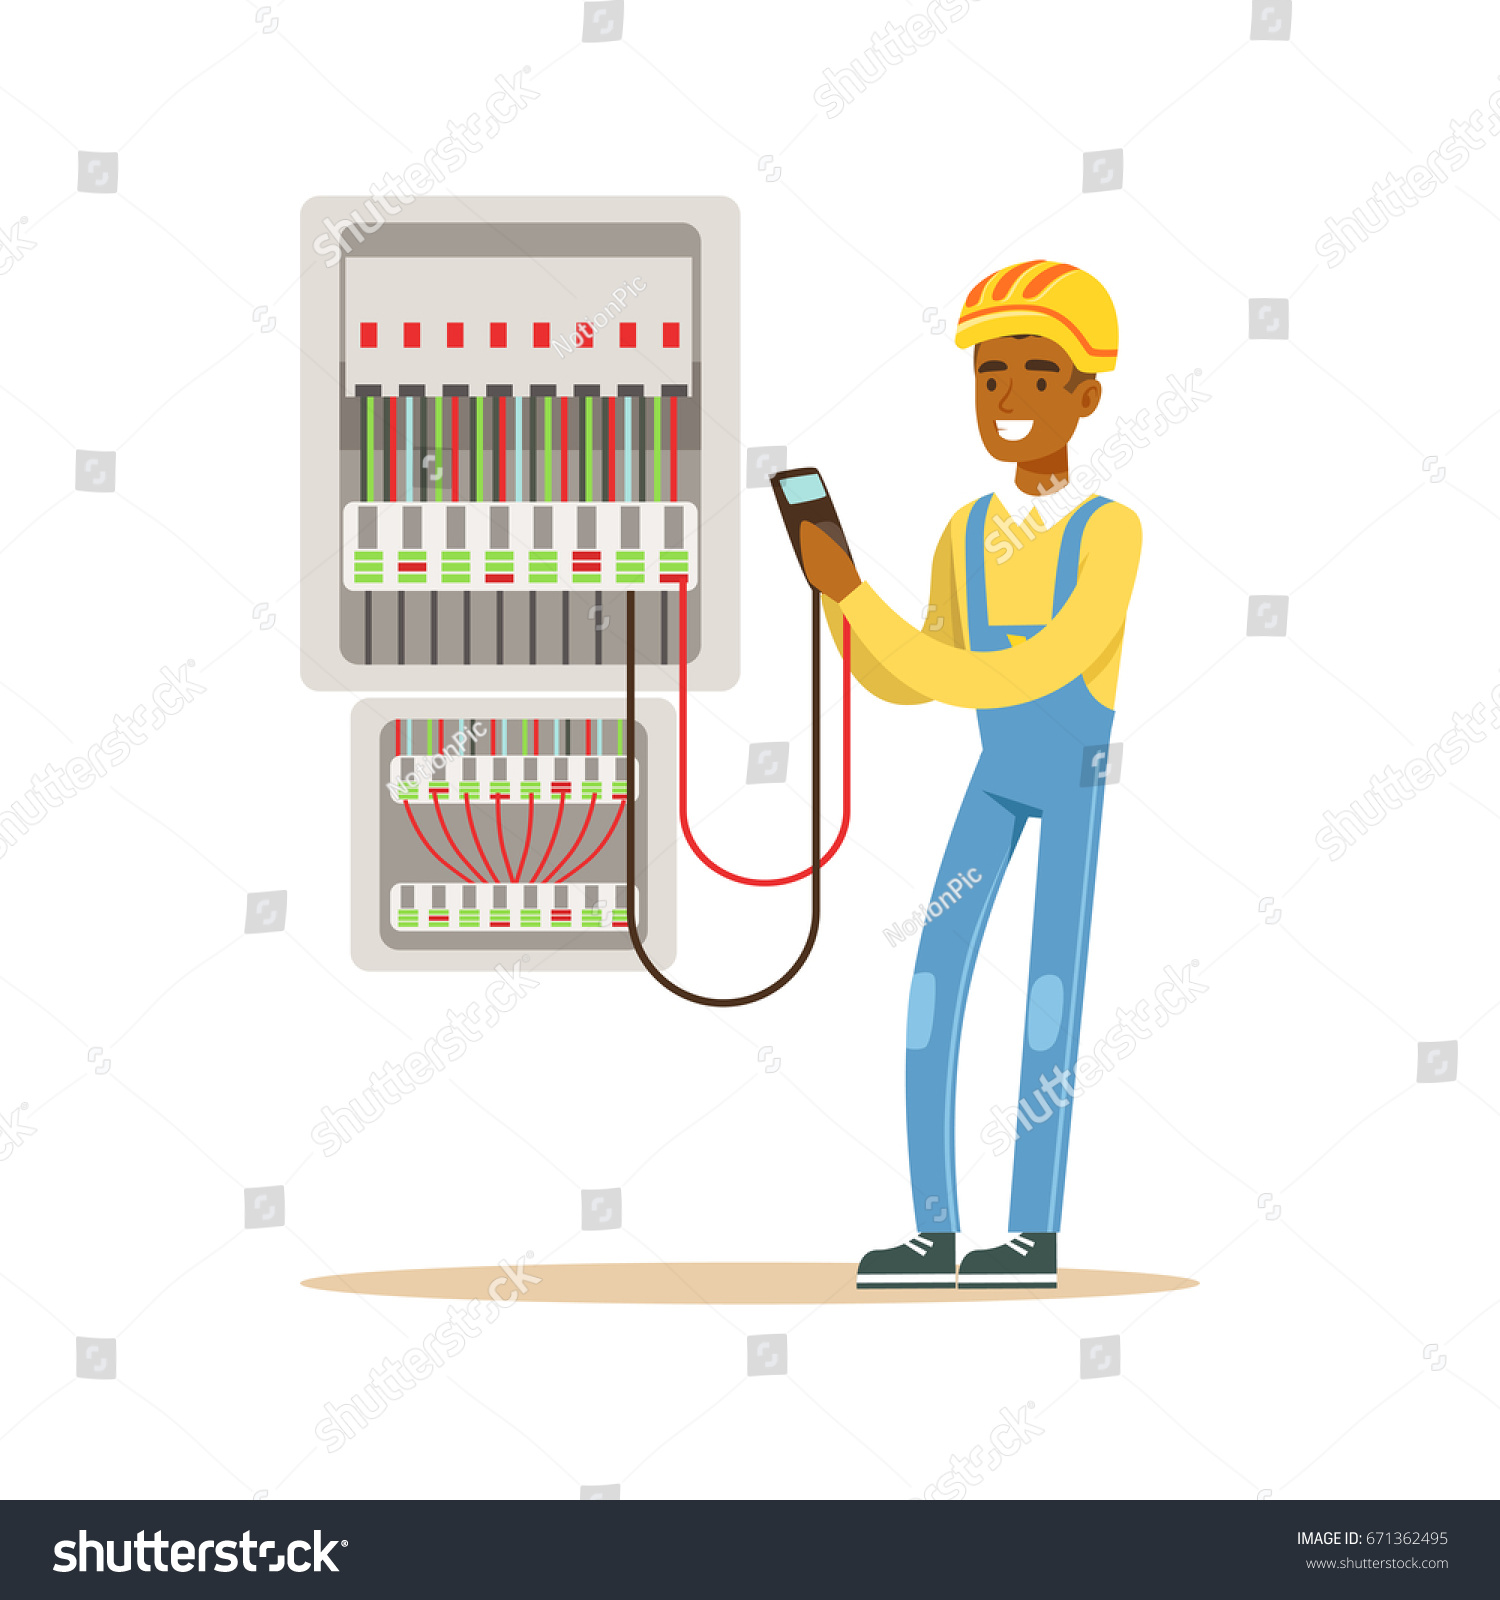 stock vector electrician engineer measuring the voltage output in fuse box electric man performing electrical 671362495 electrician engineer measuring voltage output fuse stock vector how a fuse box works at mifinder.co